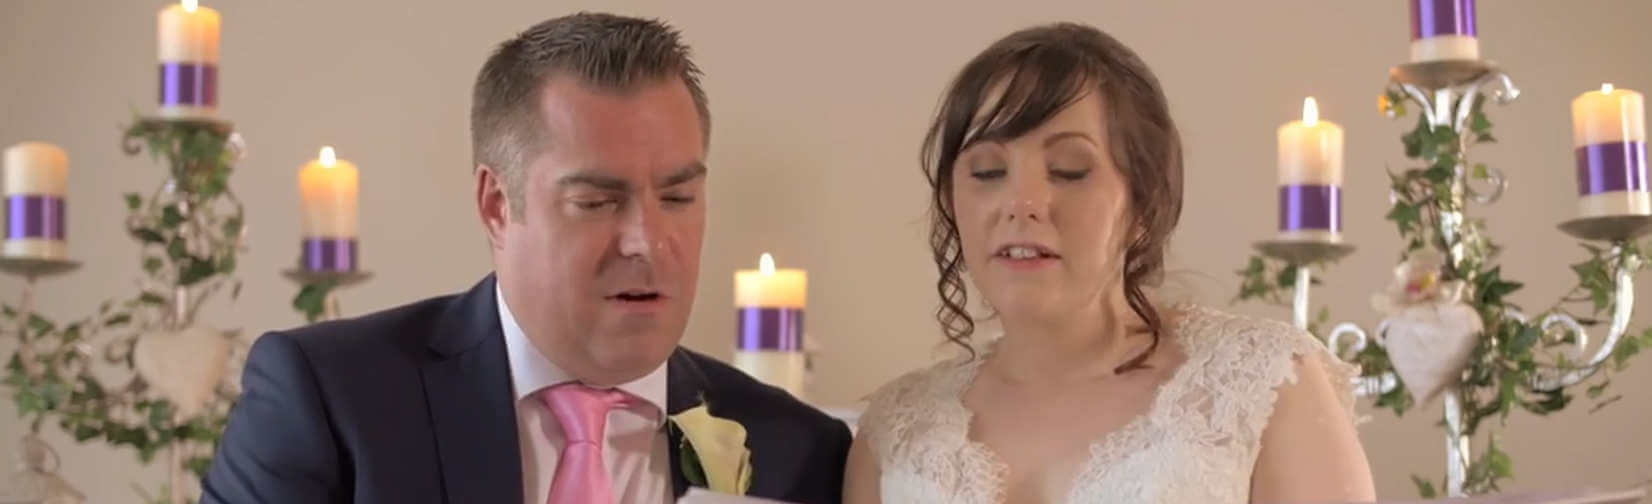 Lidl decided to help one loved -up couple make the most of their big day